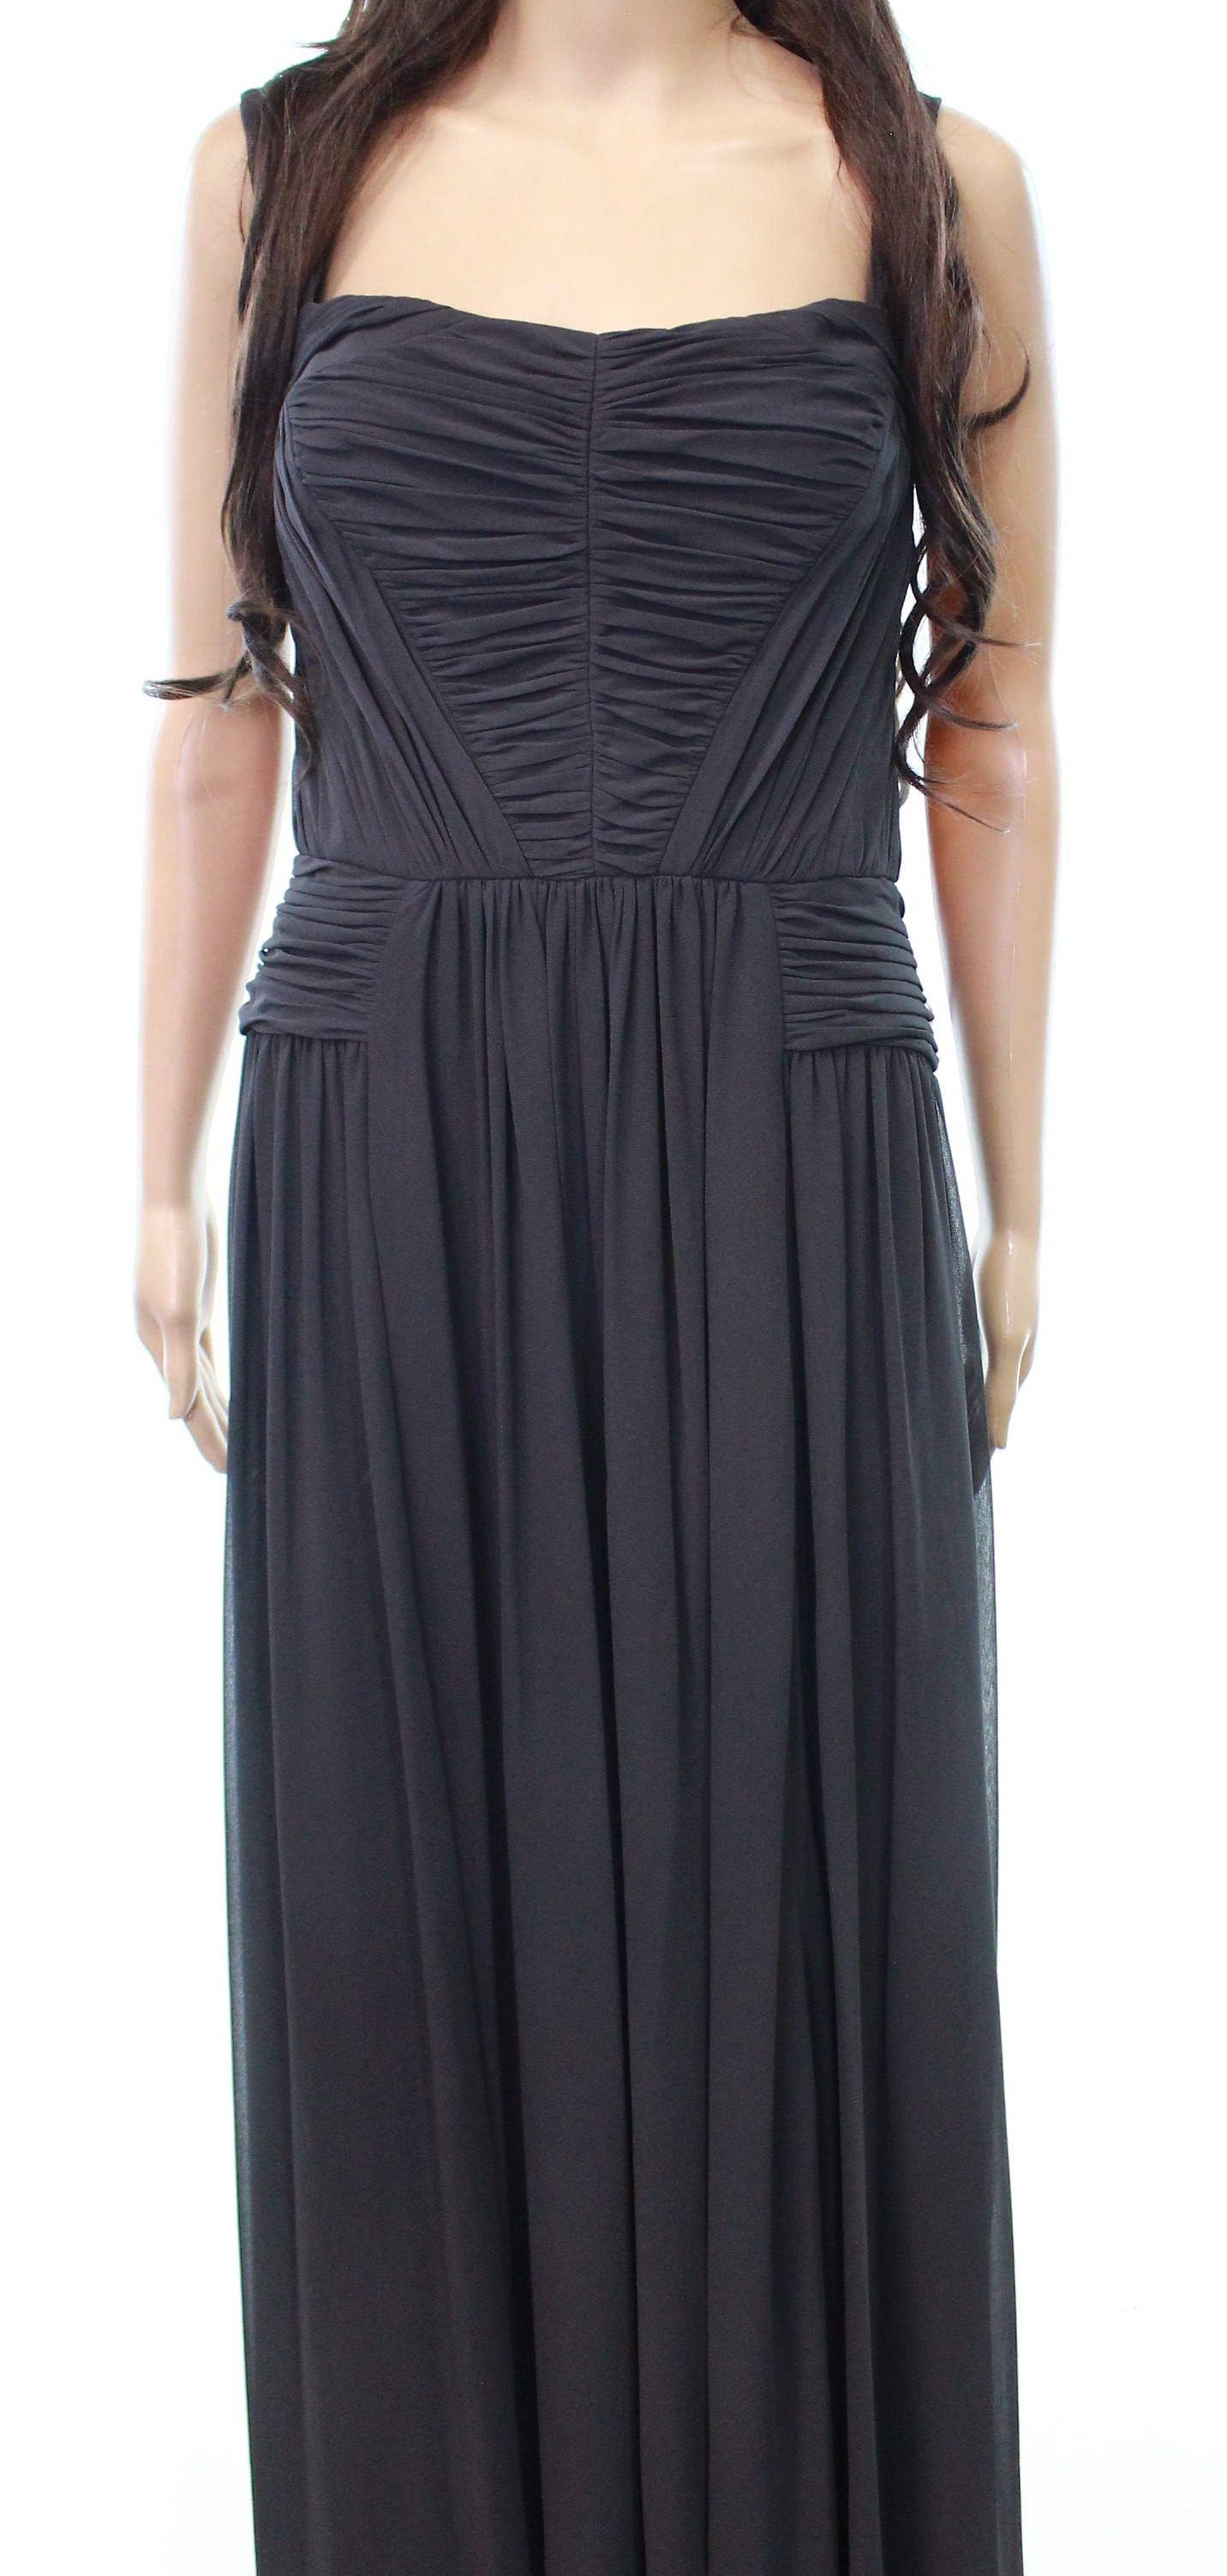 Vera Wang NEW Gray Women\'s Size 14 Solid Ruched Prom Gown Dress $368 ...